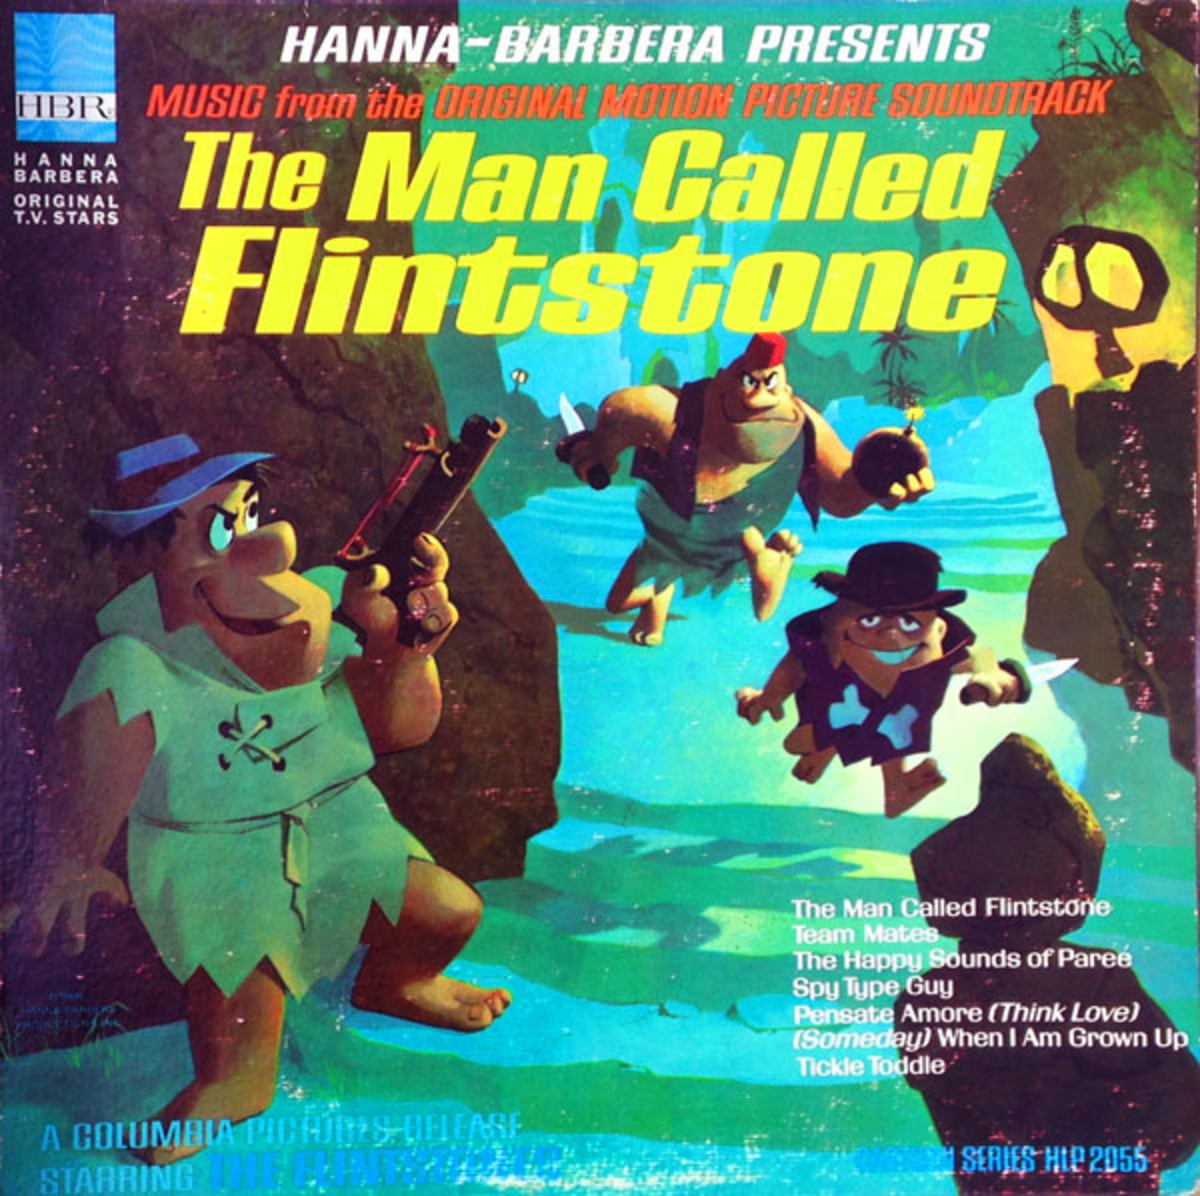 The cover to the vinyl record of the soundtrack.